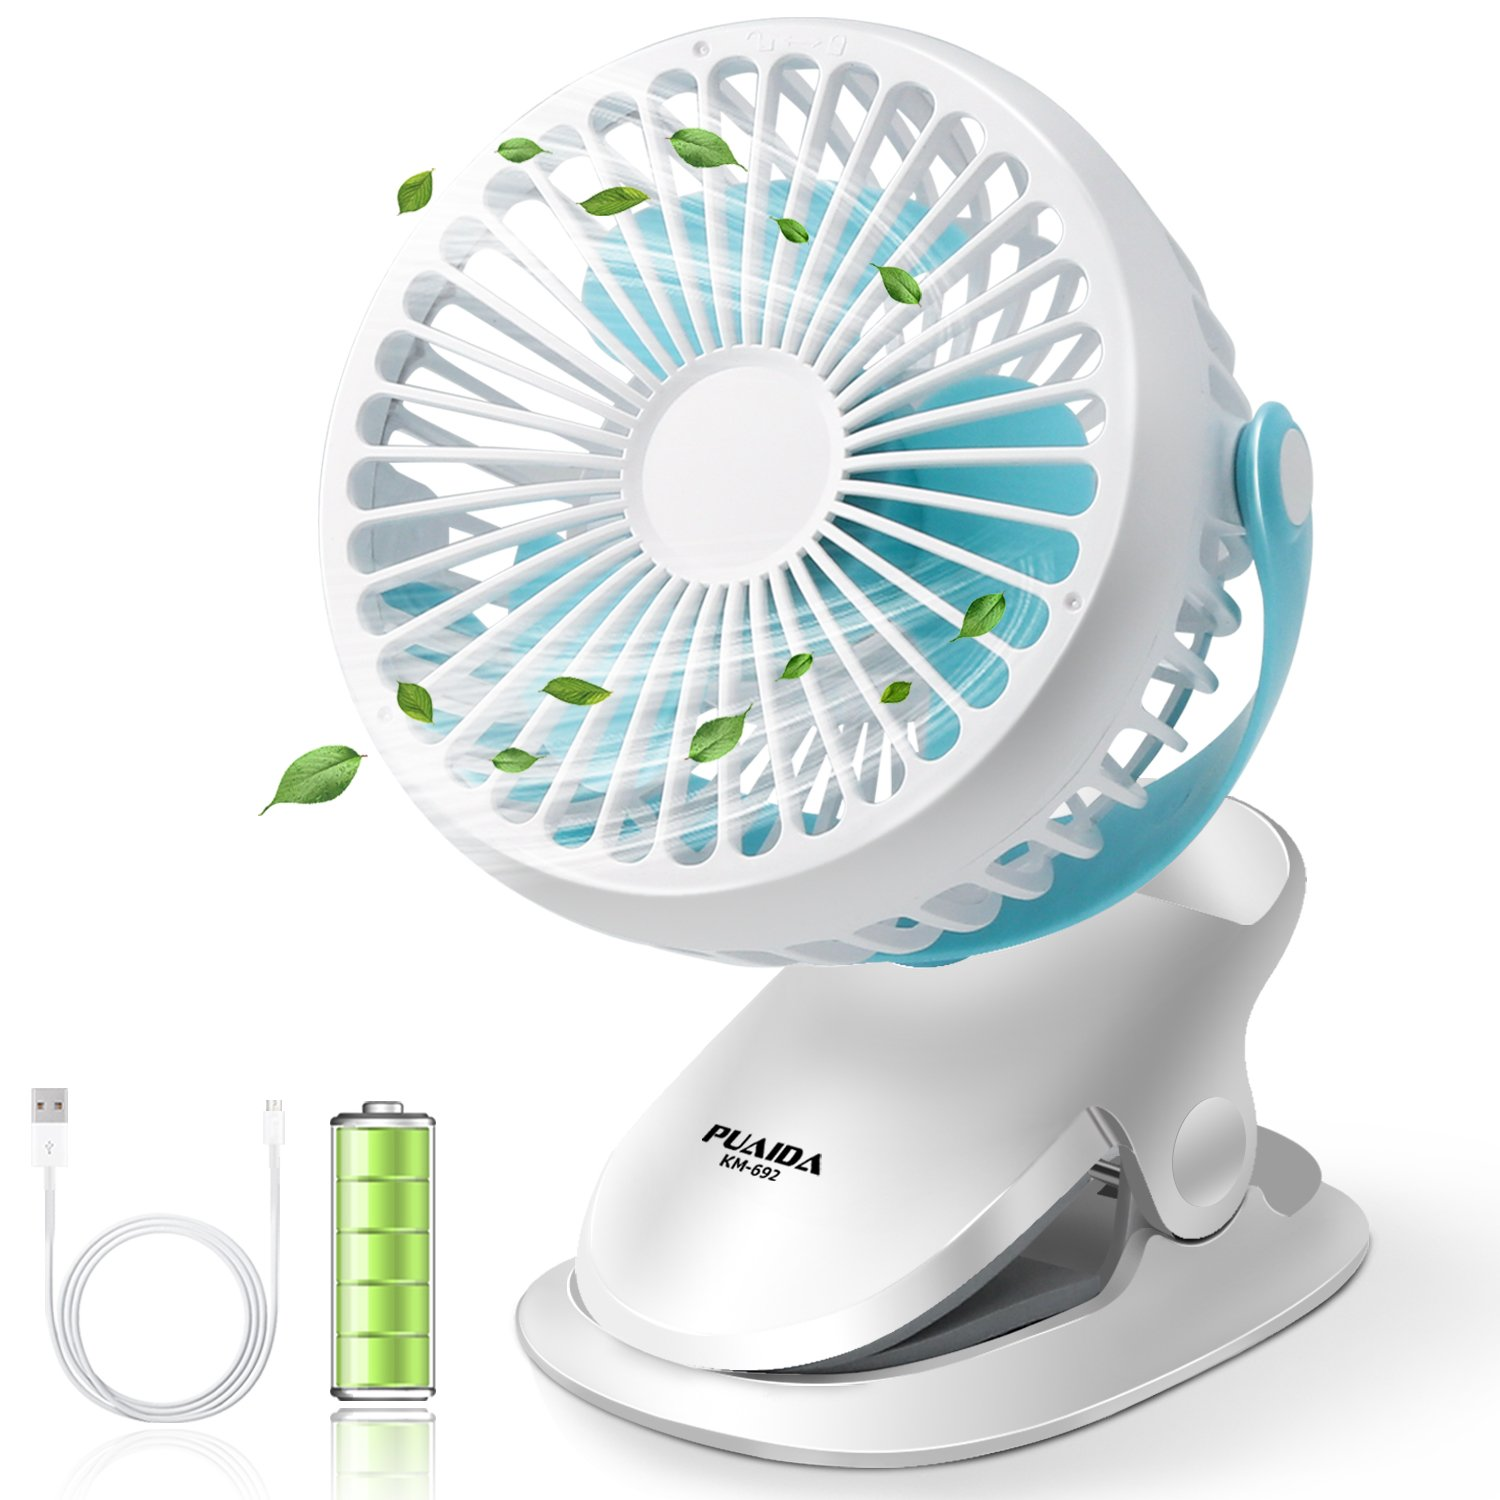 PUAIDA Clip on Stroller Fan, Battery Operated Portable USB Rechargeable Desk Fan with 2500mAh Battery, 3 Speeds and 360 Degree Rotation for Office, Bedroom, Outdoor Camping